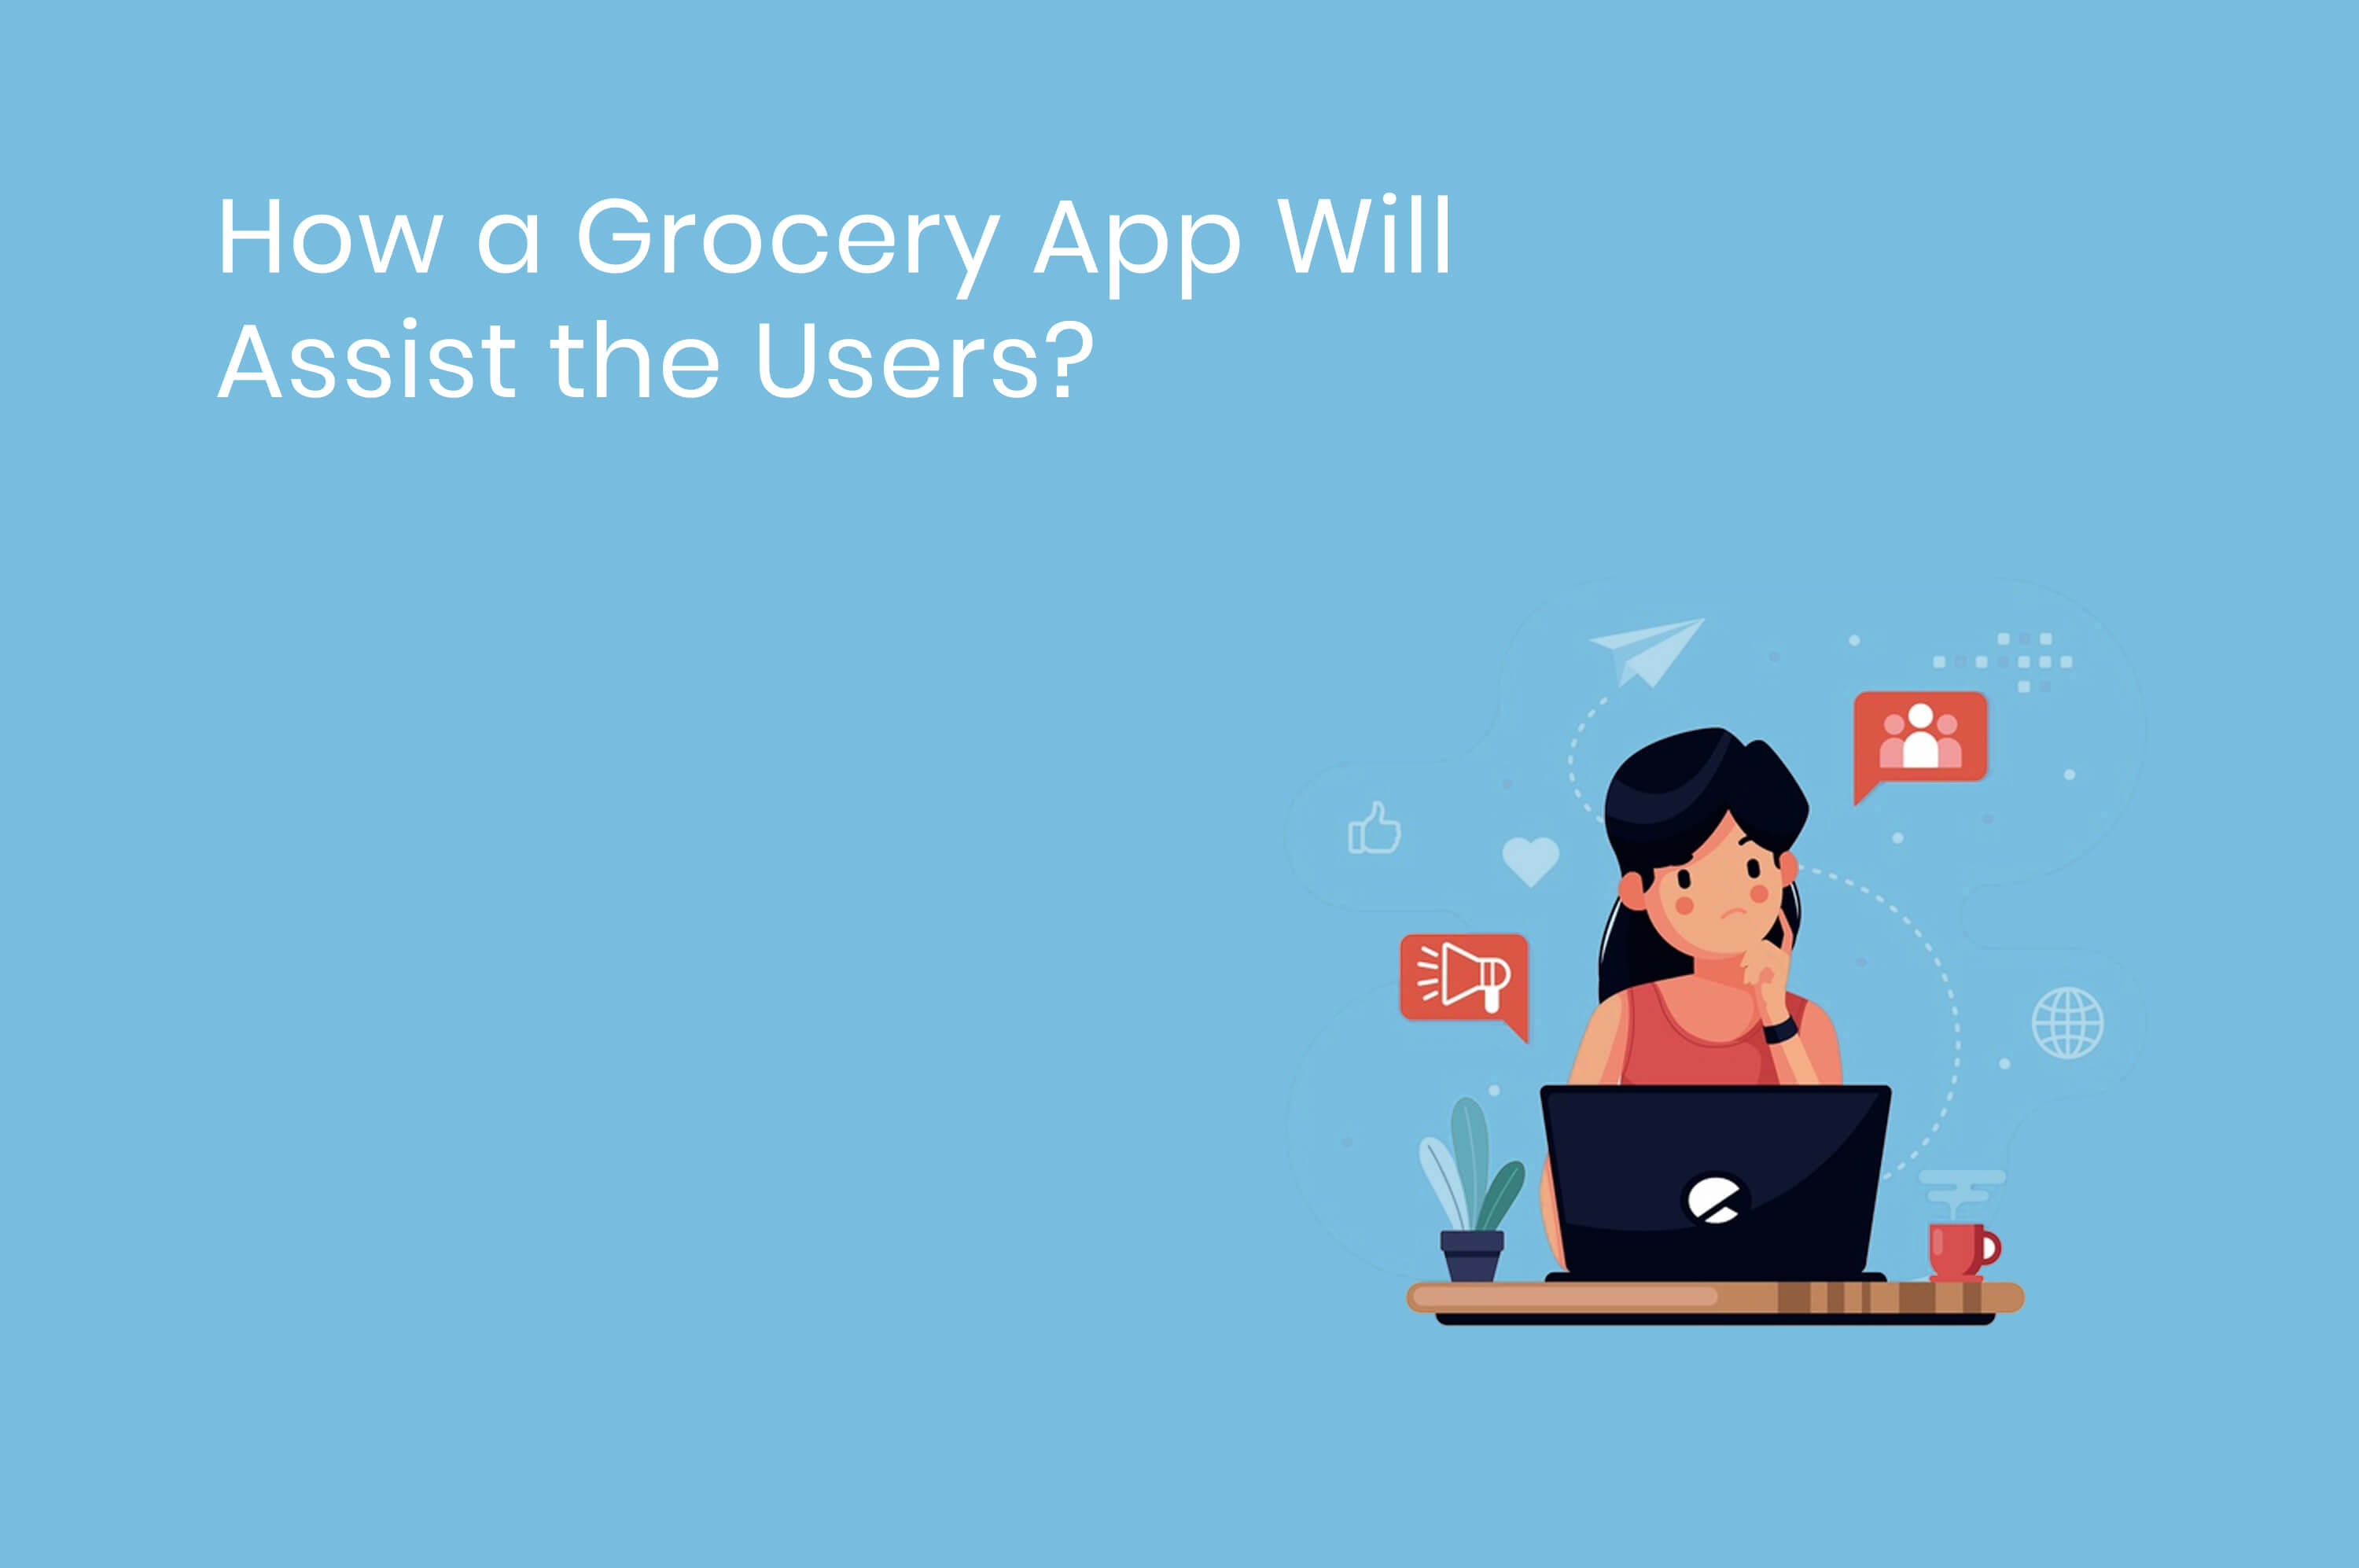 a girl with a laptop is thinking to place an order via grocery app